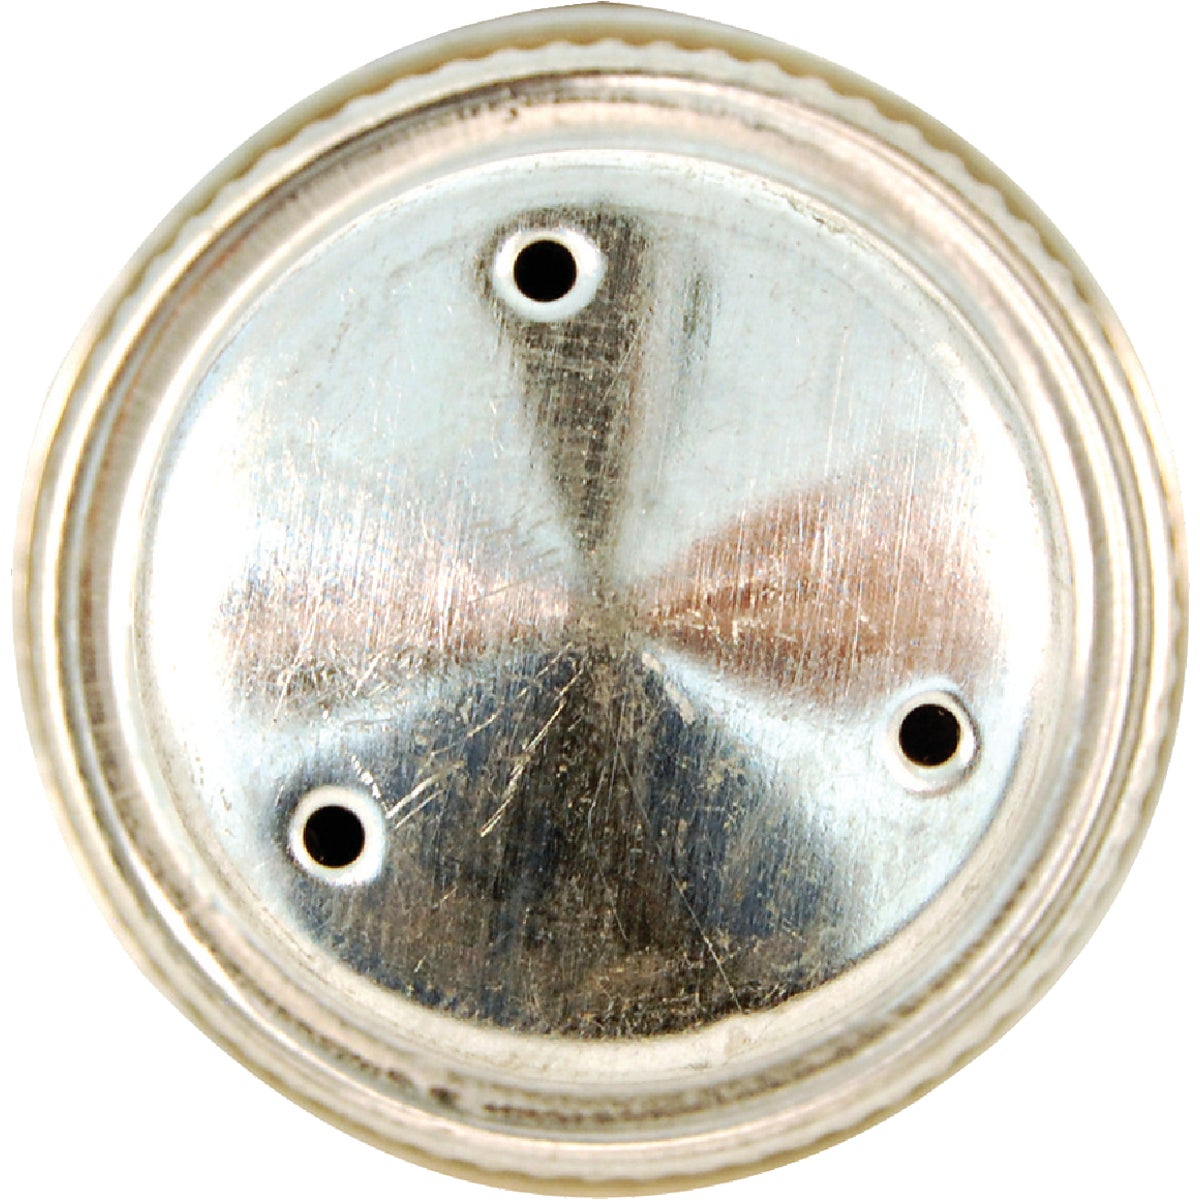 "1-1/2"" B&S GAS CAP - GC-125 by Arnold Corp"